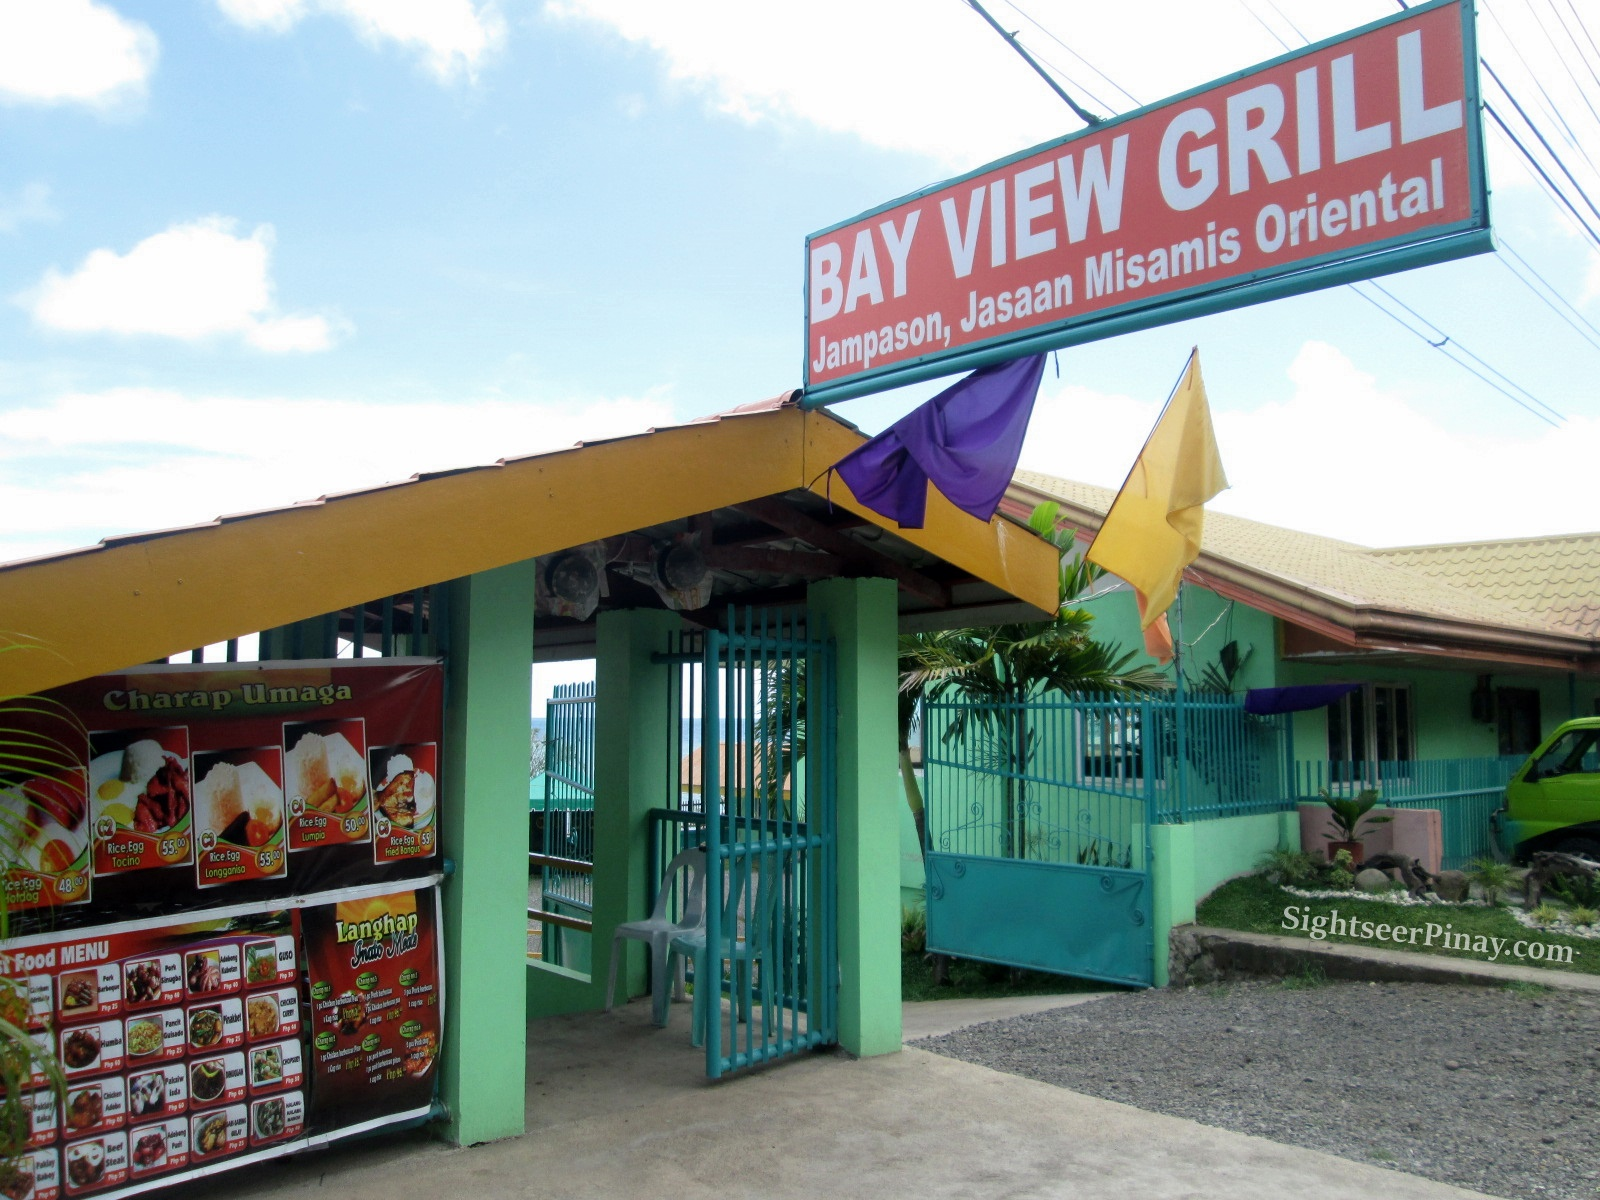 When you see this tarp on the highway, you know you're heading the right way. It's Bay View Grill!